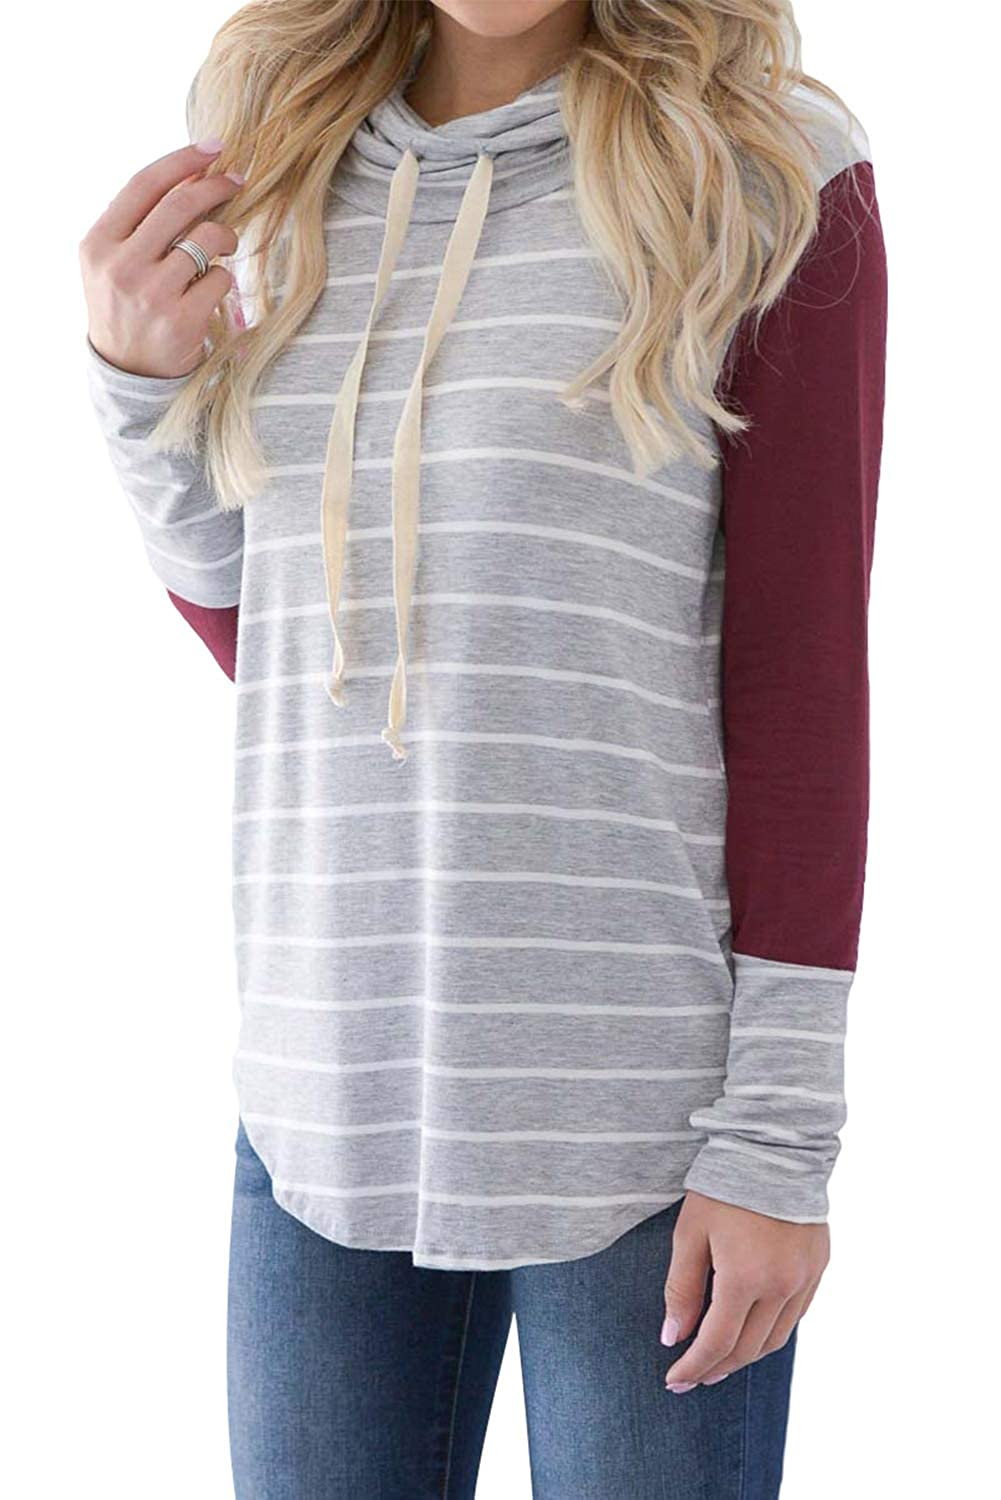 Dasbayla Womens Colour Block Striped Sweatshirts Long Sleeve Cowl Neck Casual Tunic Tops DASL-T3011-Sweatshirts